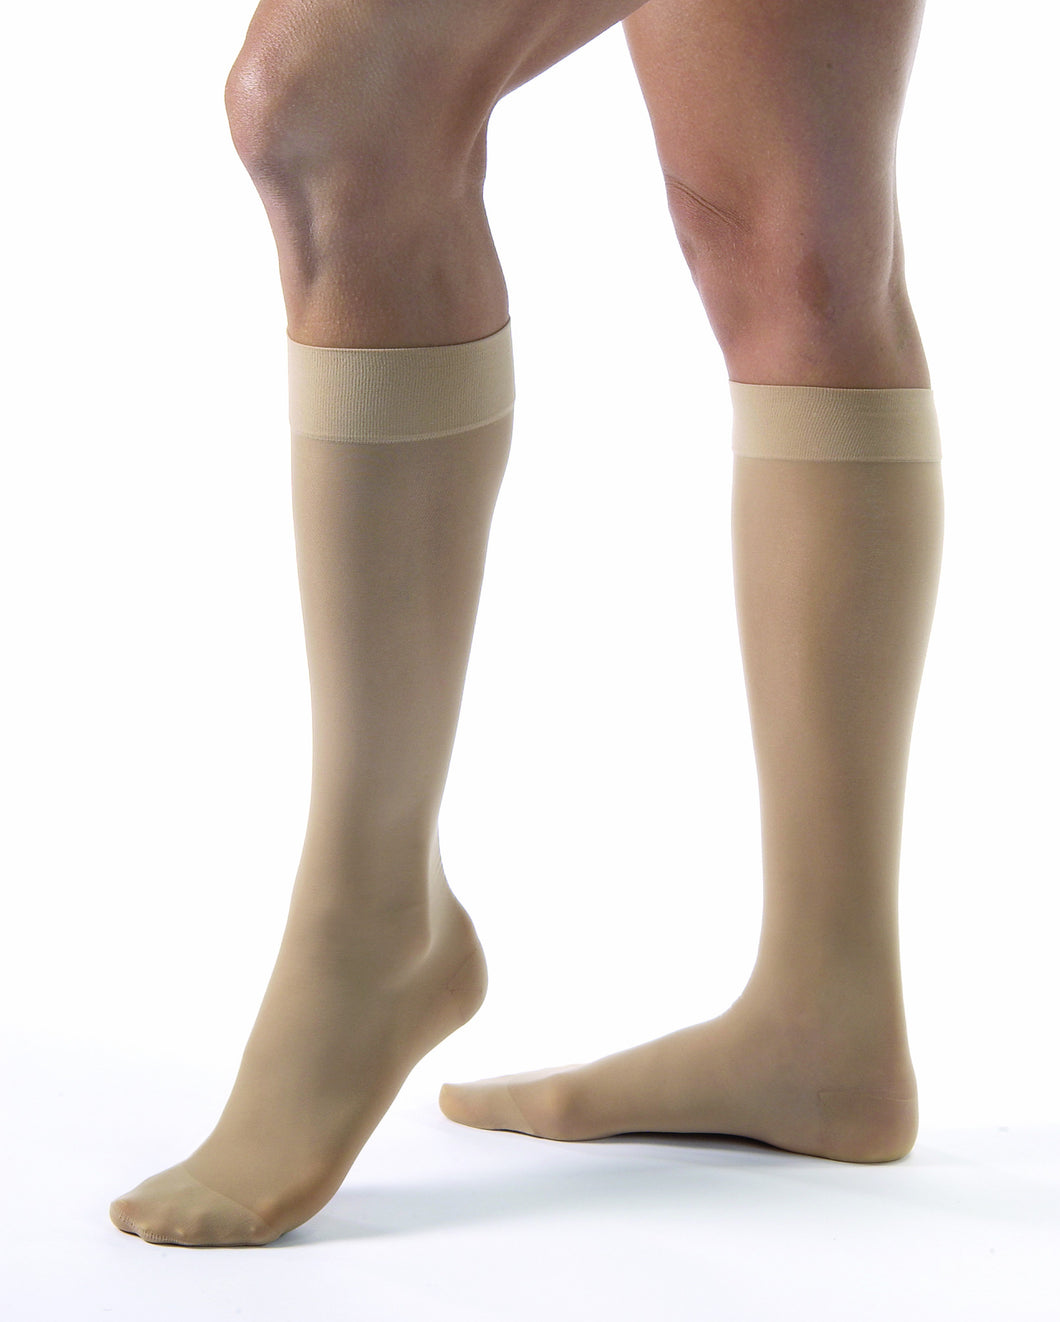 Ultrasheer | Knee High Compression Stockings | Closed Toe | 15-20 mmHg